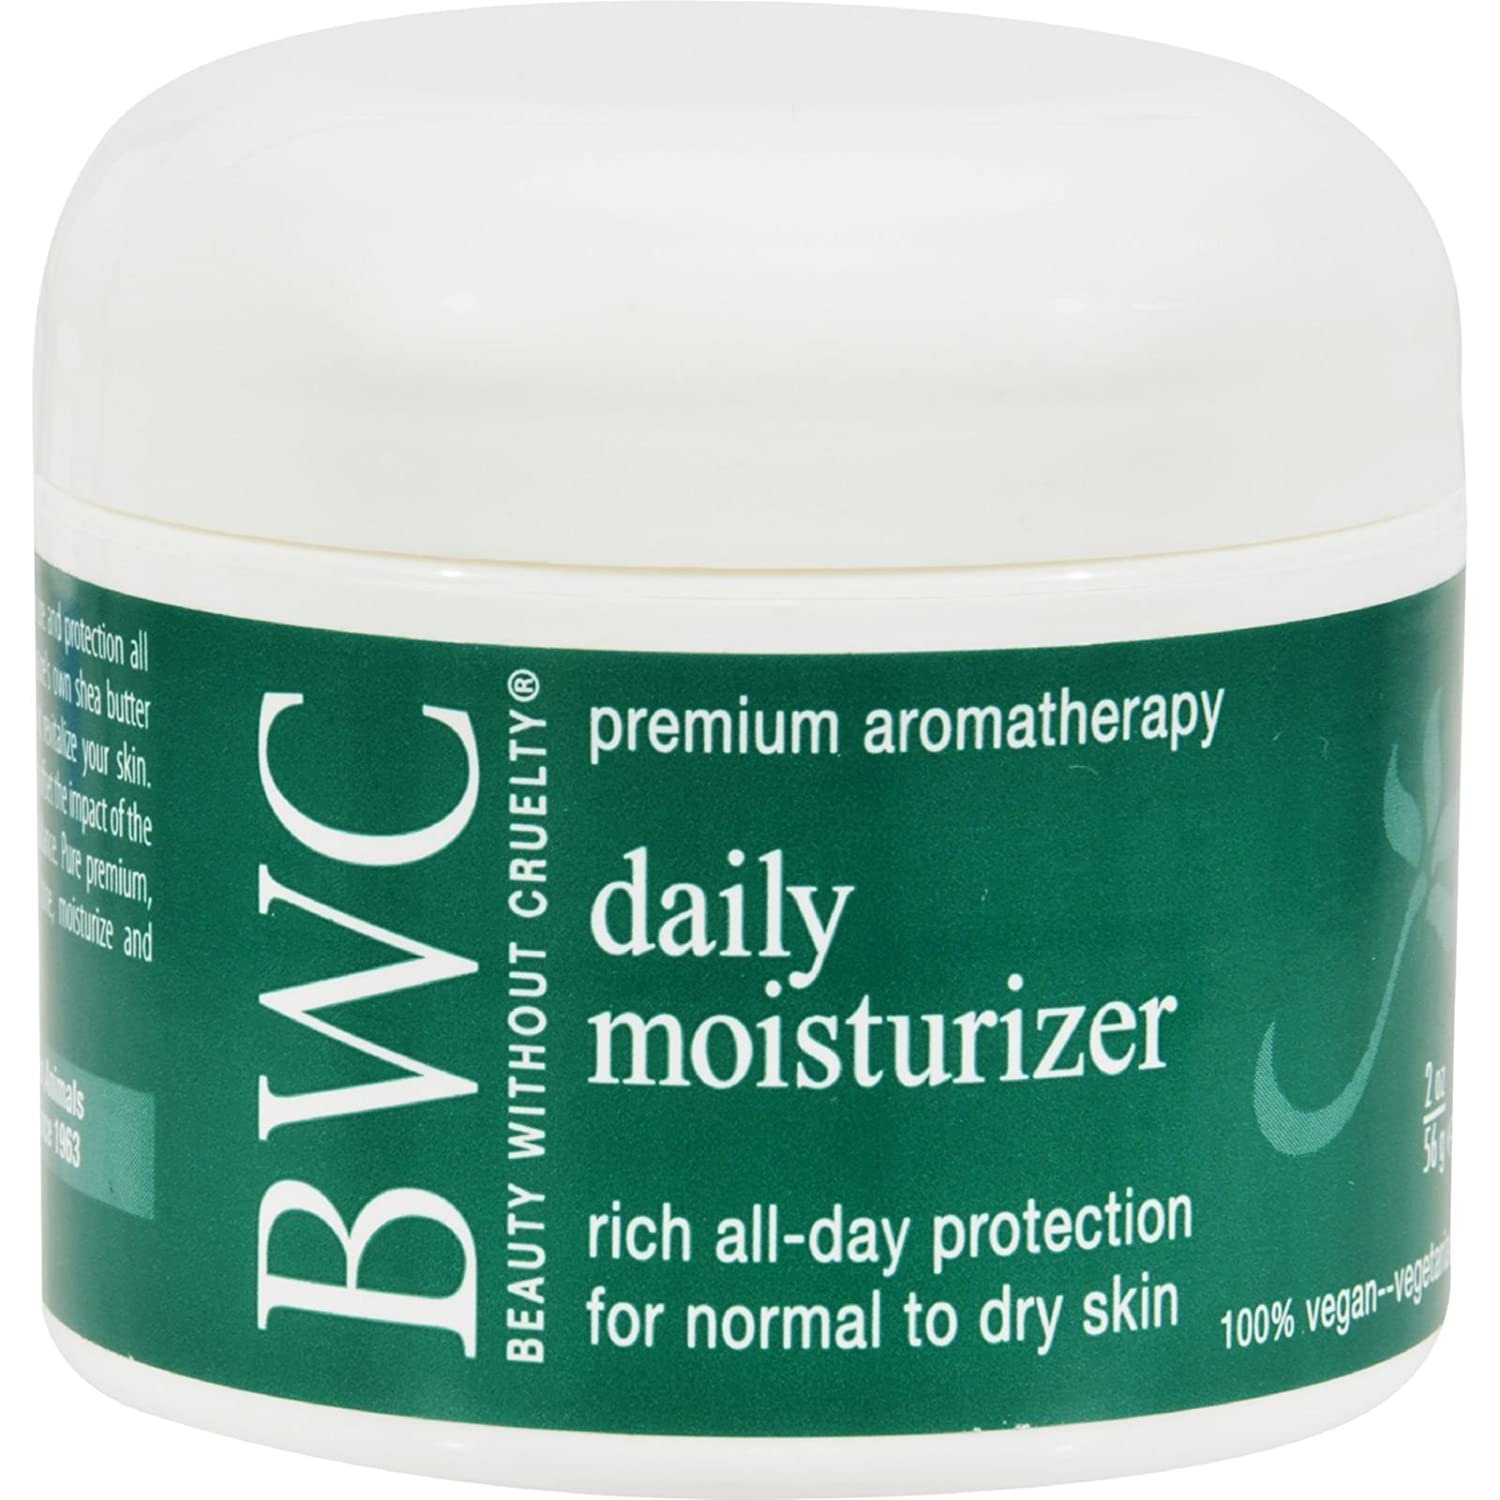 Moisturizer-All Day Beauty Without Cruelty 2 oz Cream